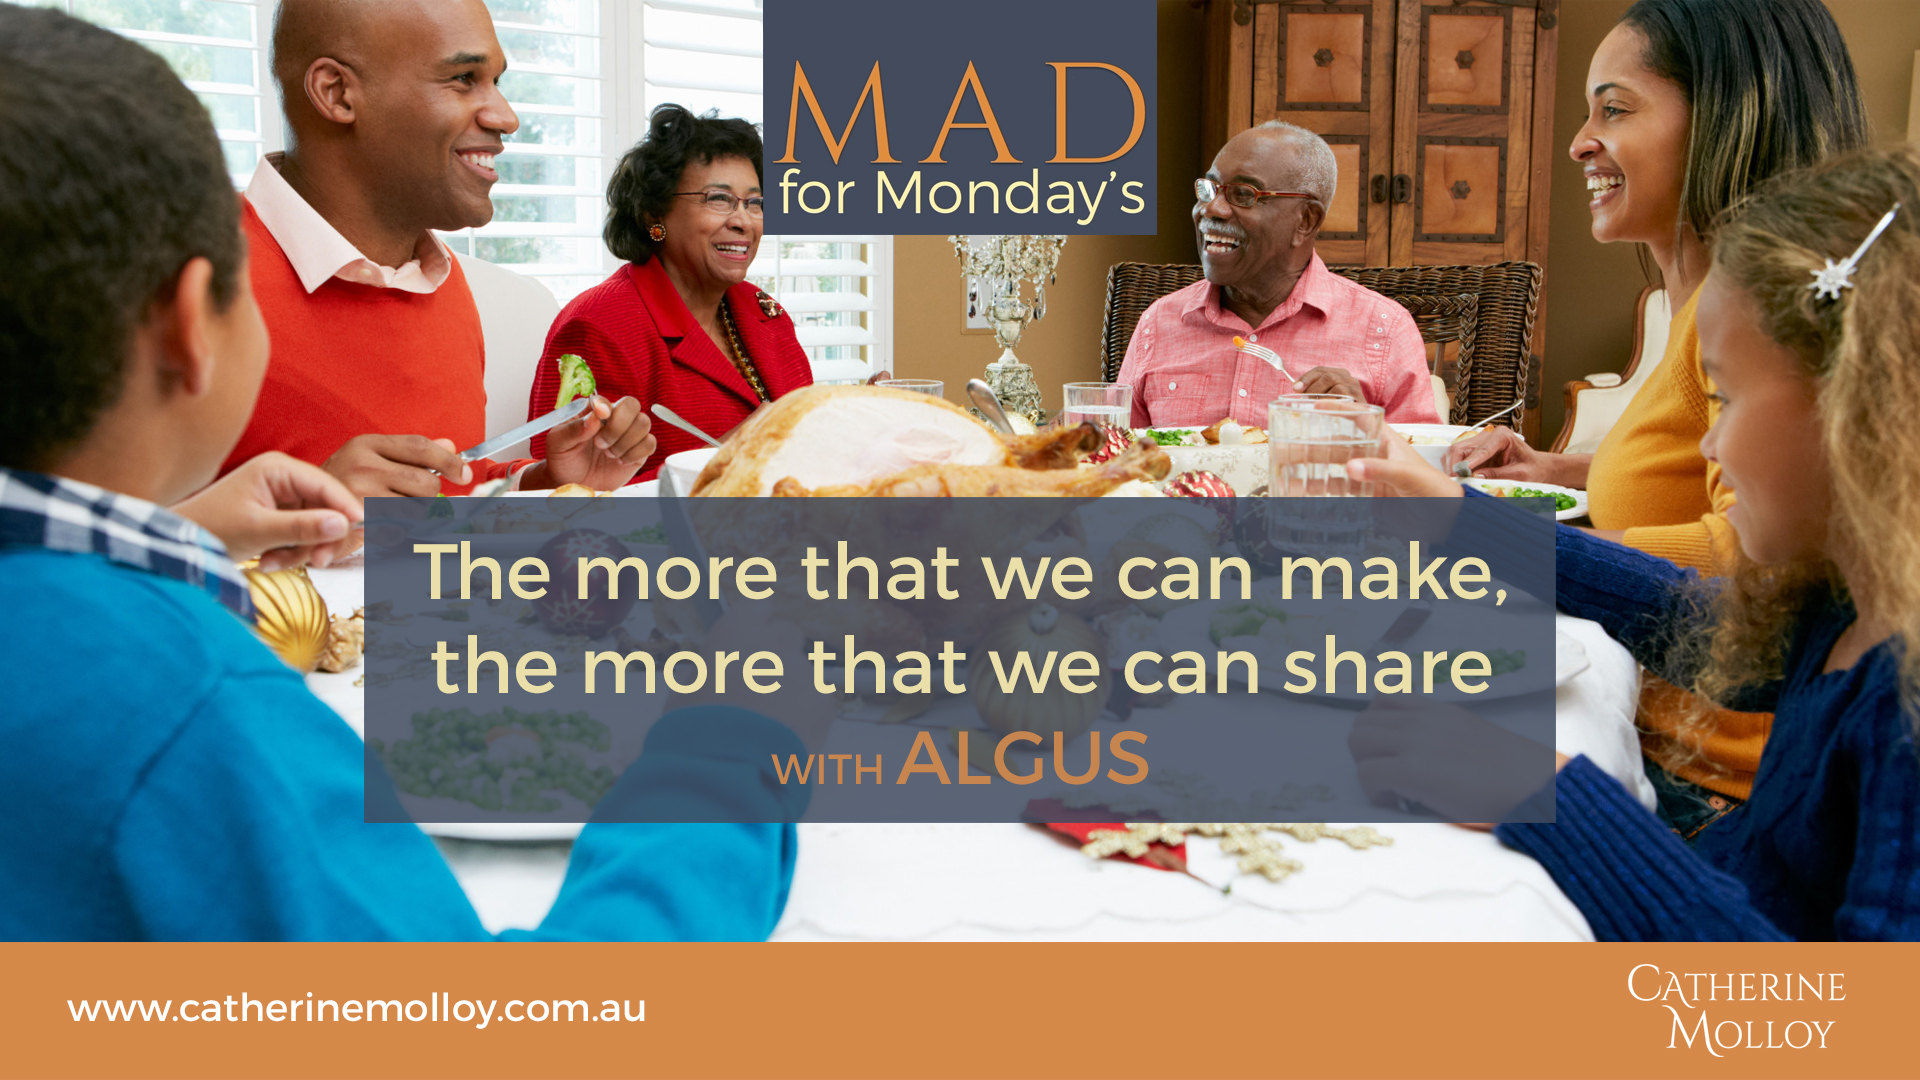 MAD for Monday's – The more that we can make, the more that we can share